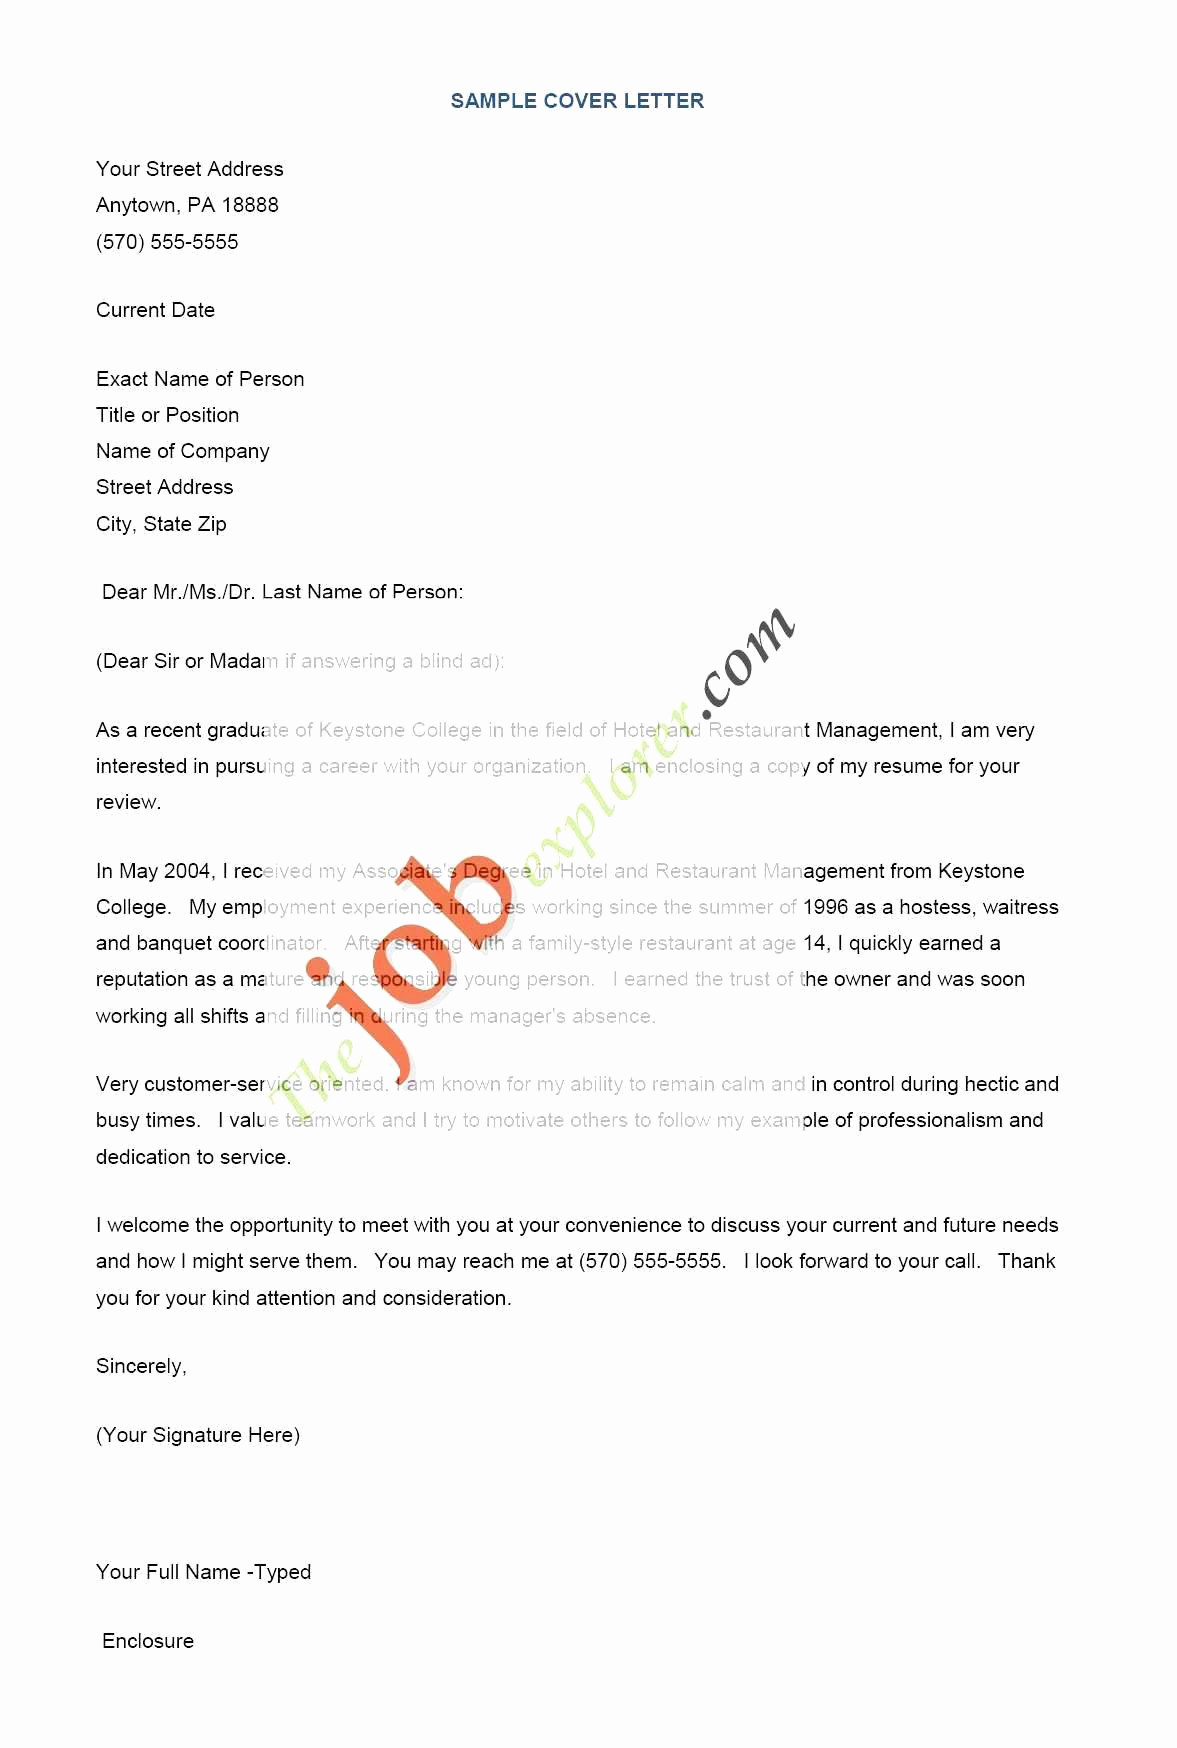 Career Cruising Resume Template - Fresh Current formal Letter format Roguesyses